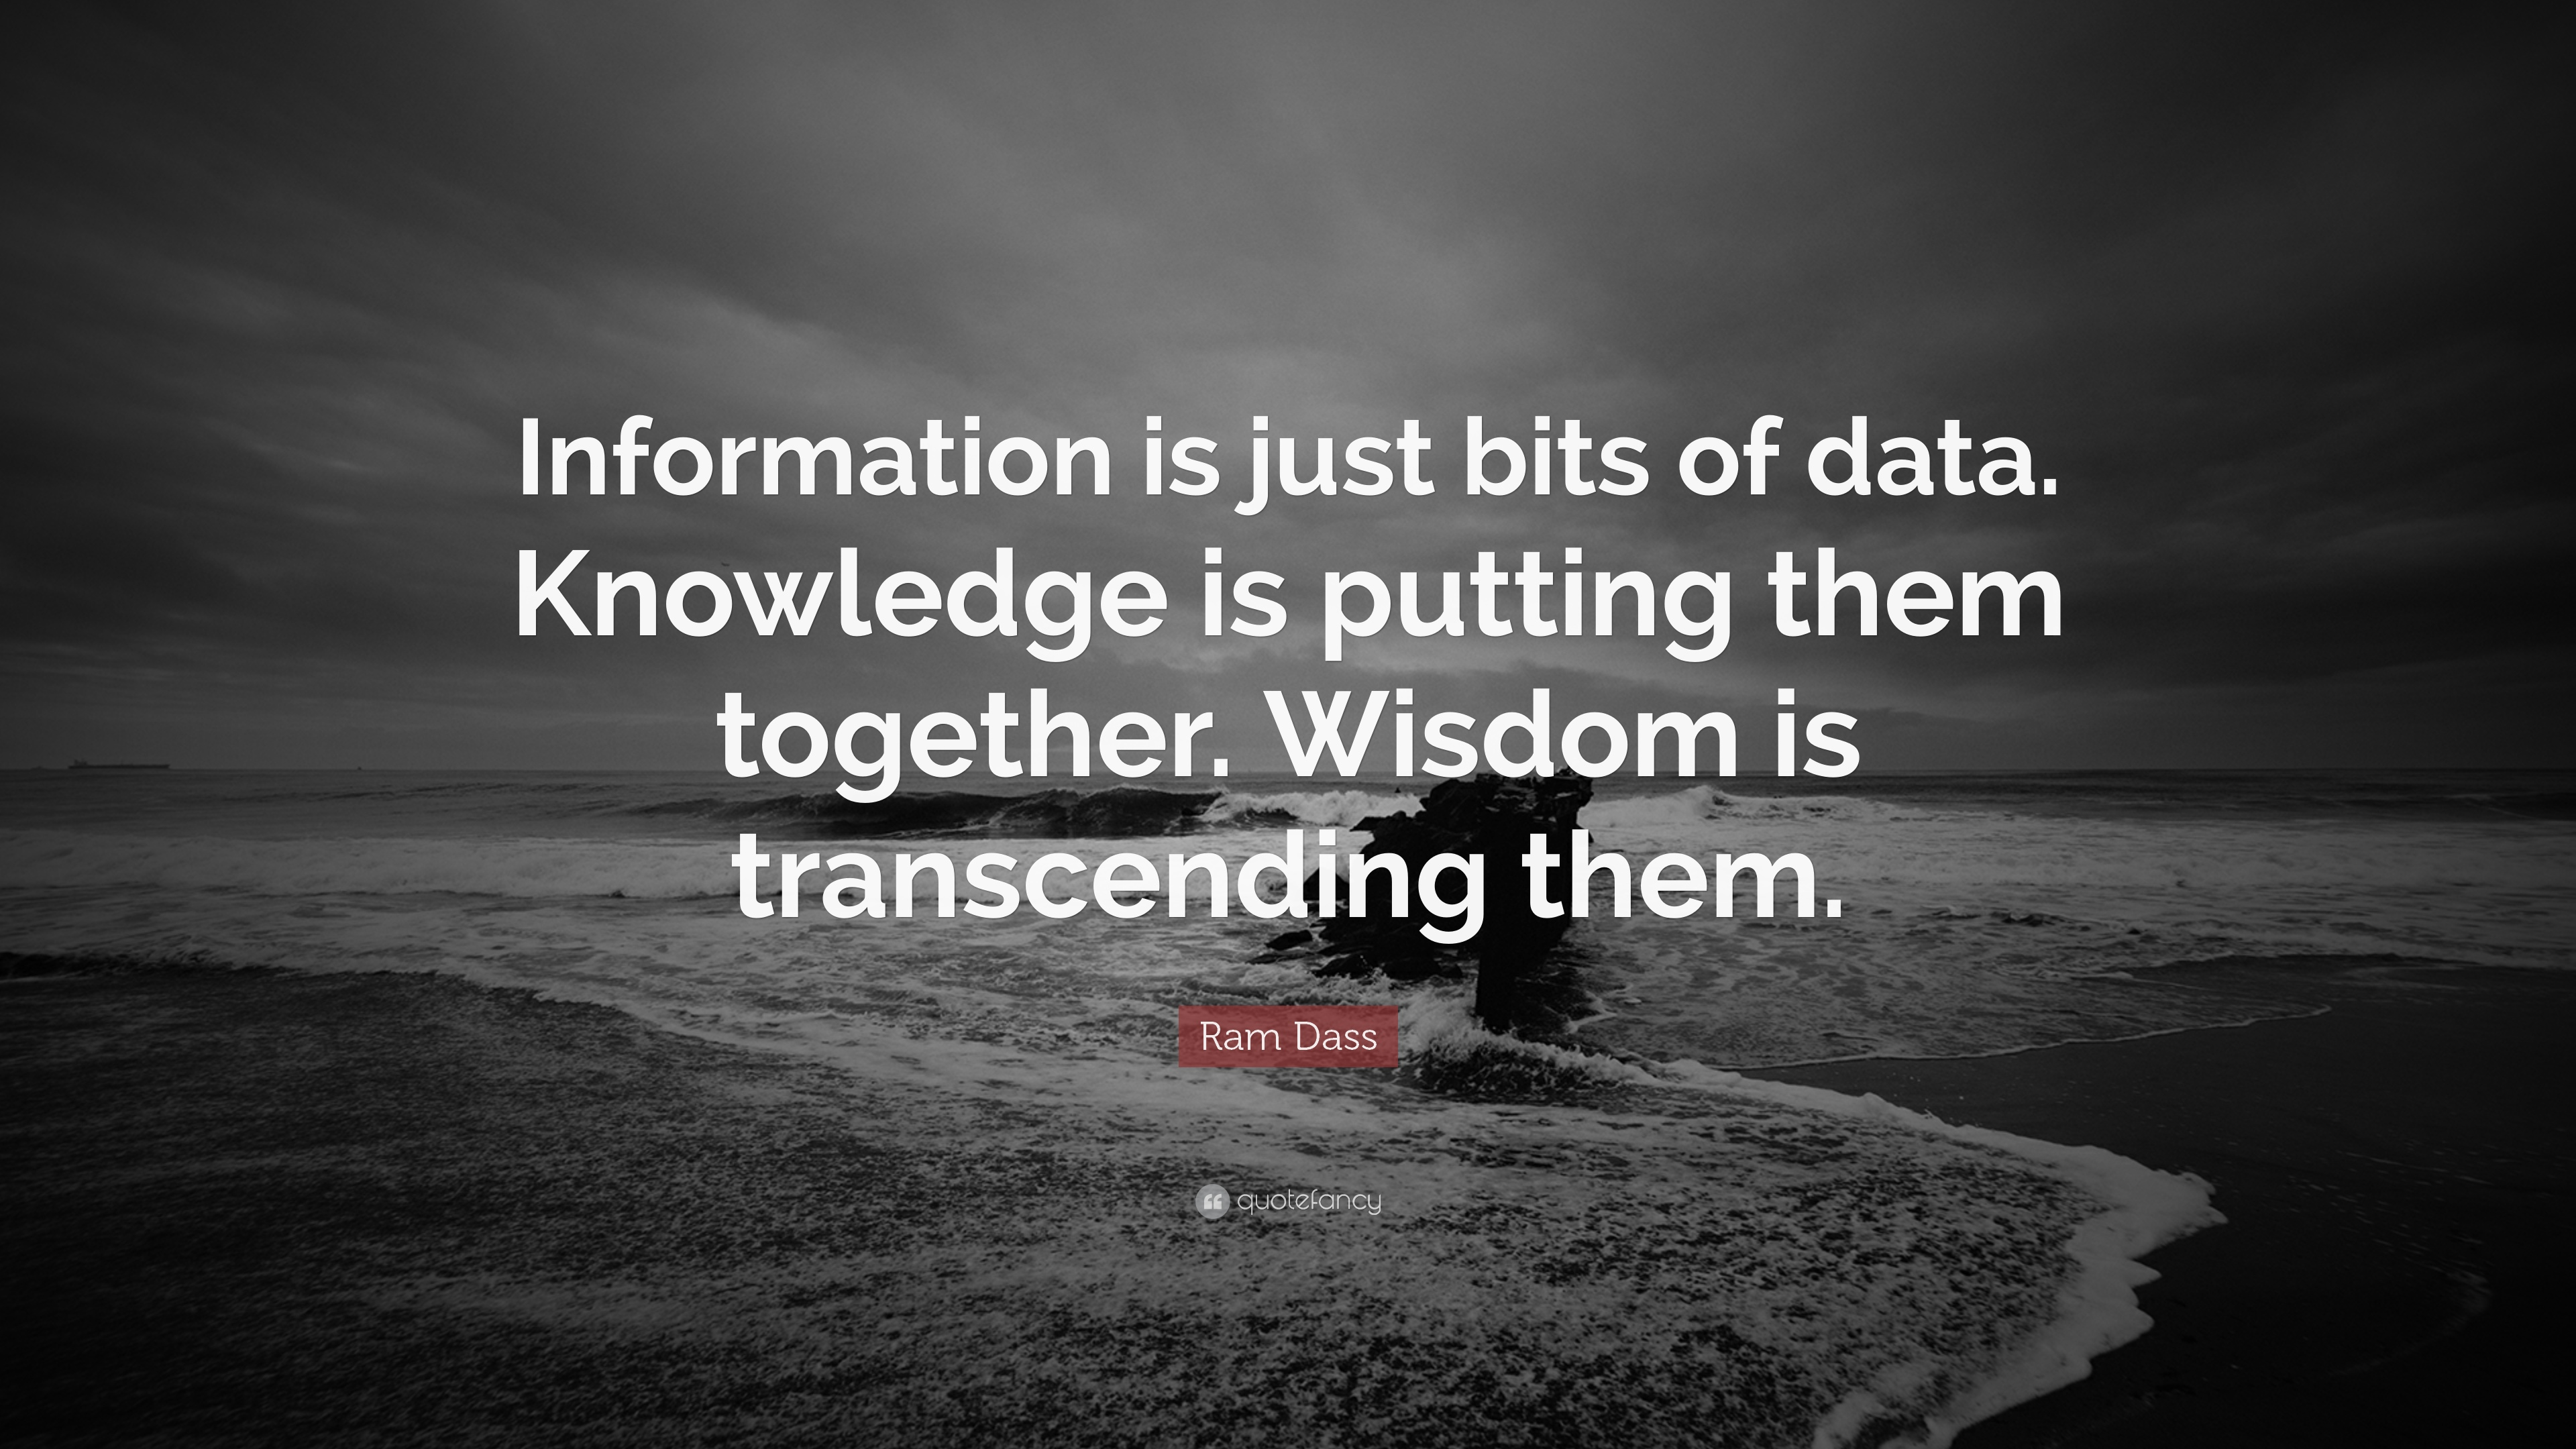 Short Life Quotes Wallpaper Ram Dass Quote Information Is Just Bits Of Data